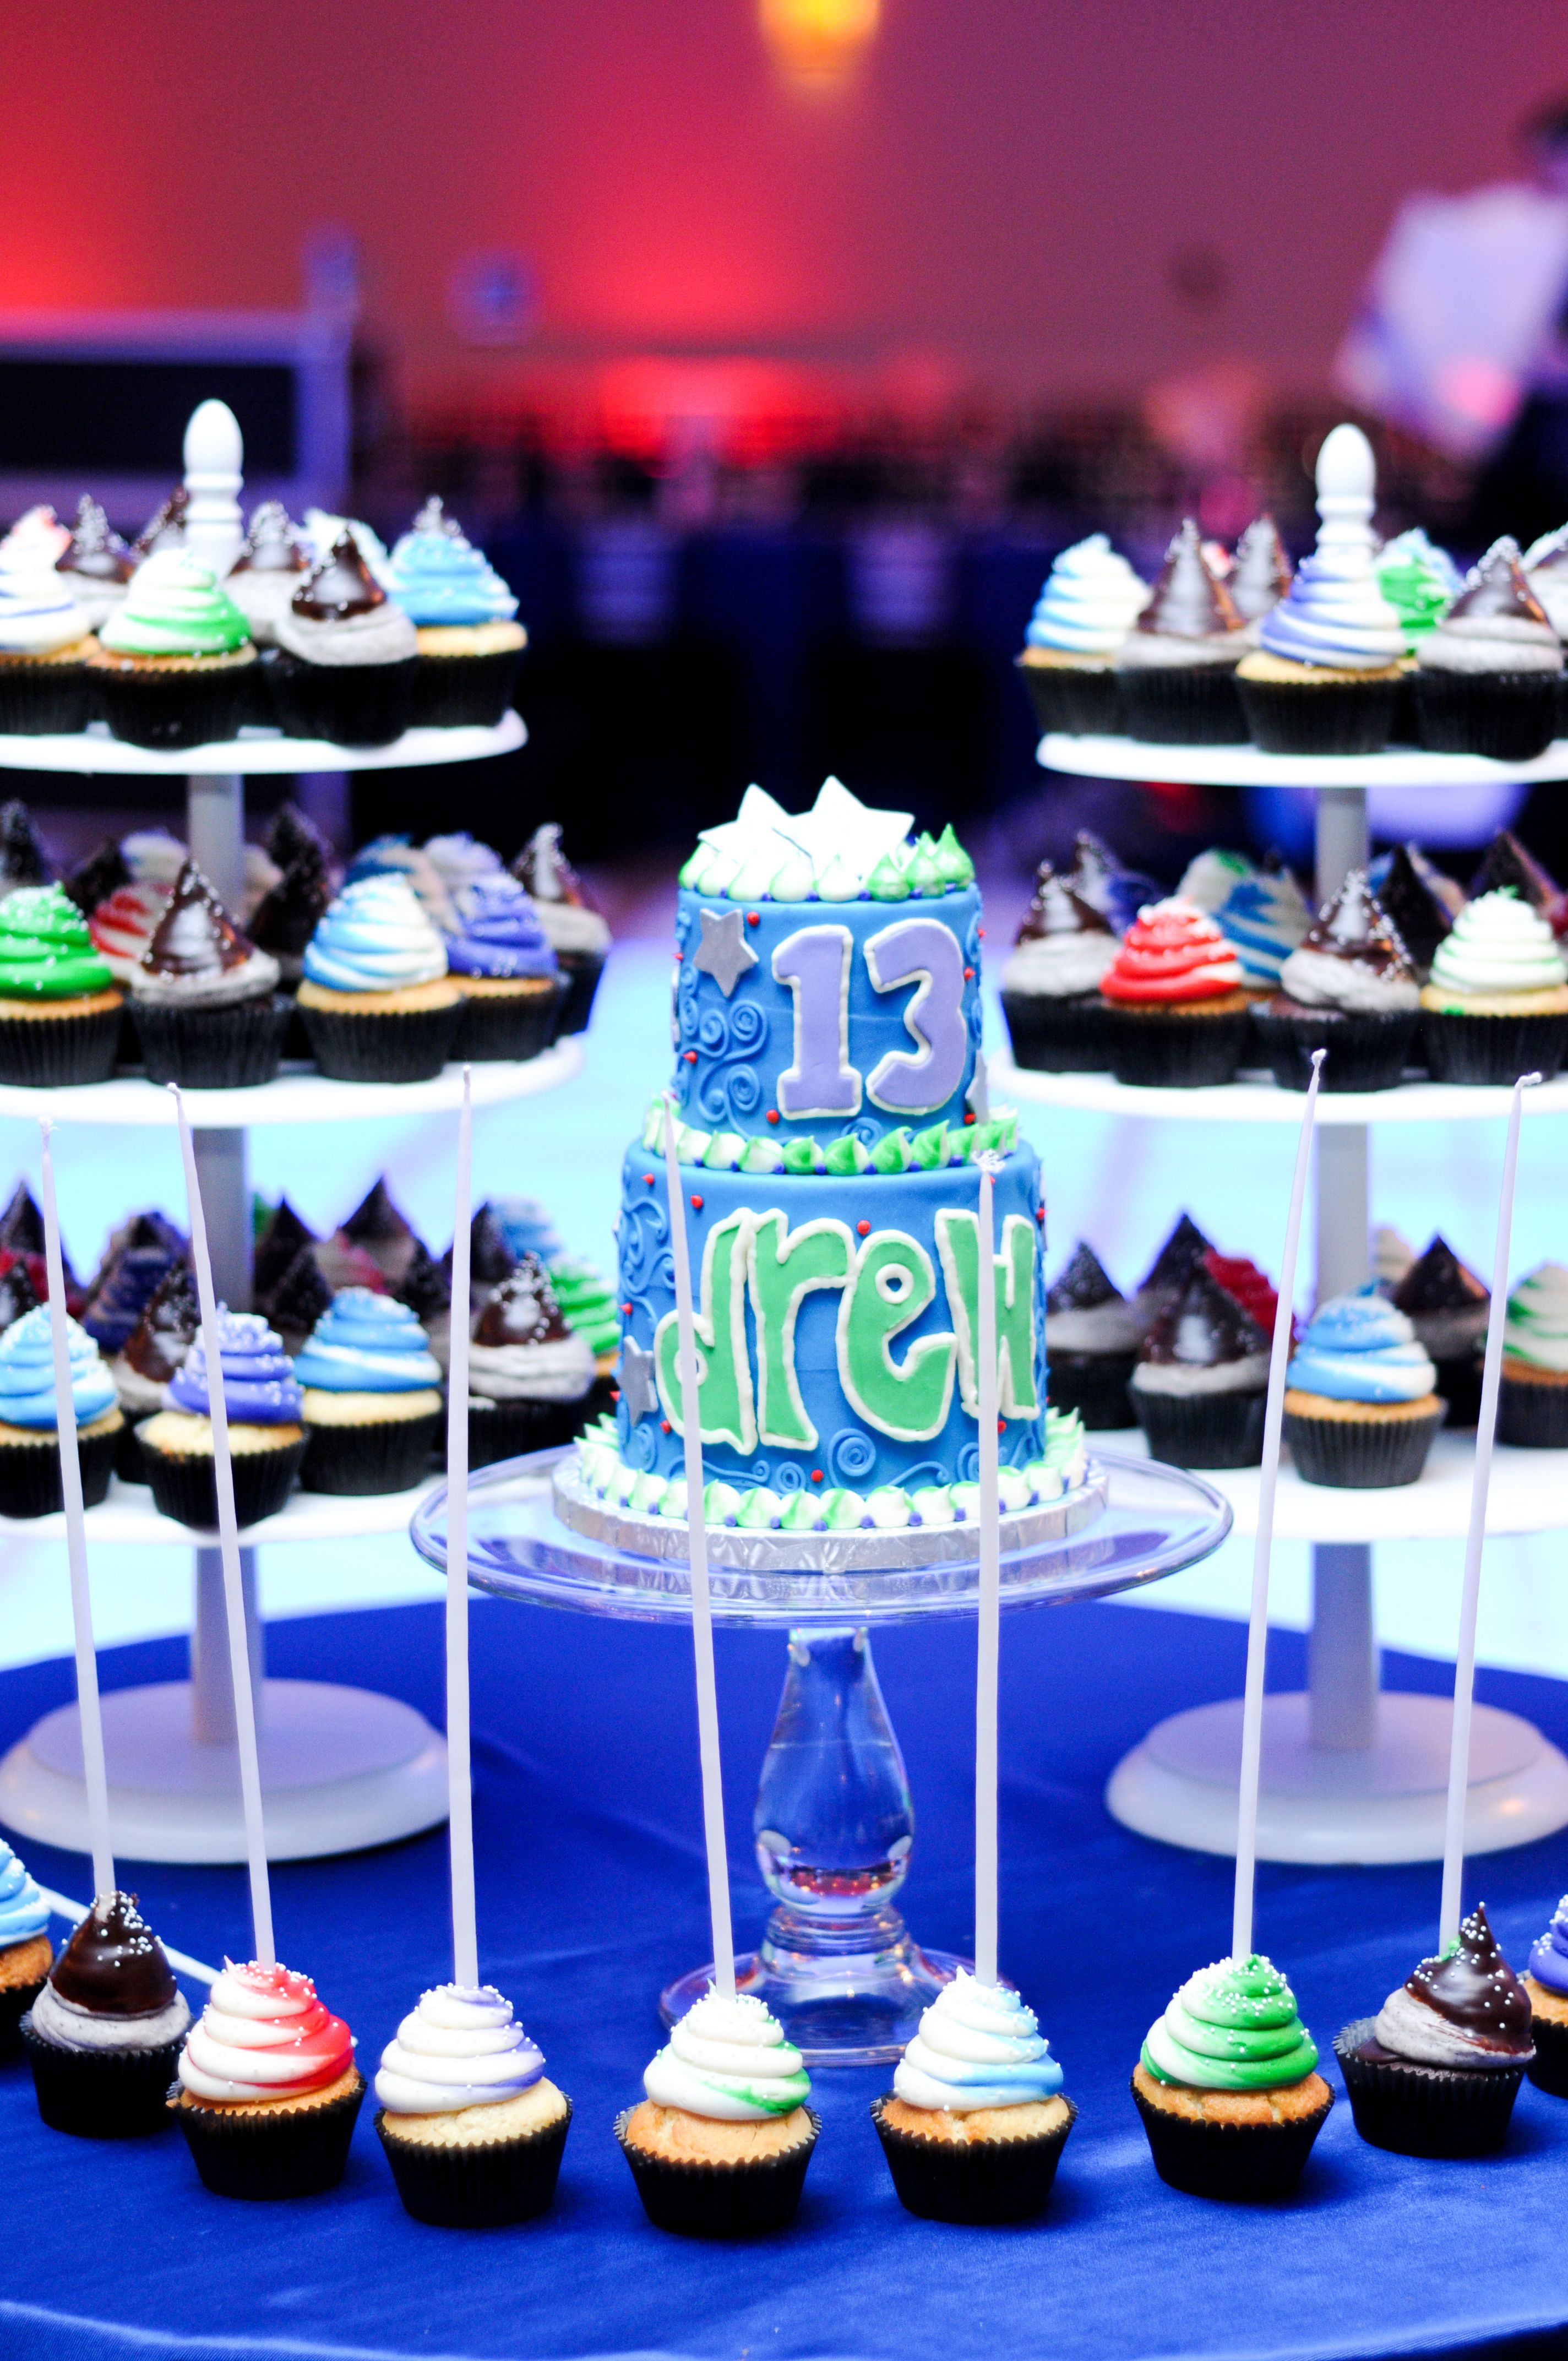 Bar mitzvah decor south florida mitzvah production by 84 west events - Bar Mitzvah Cake By Eat Cake And Candle Lighting With Cupcakes David S Catering